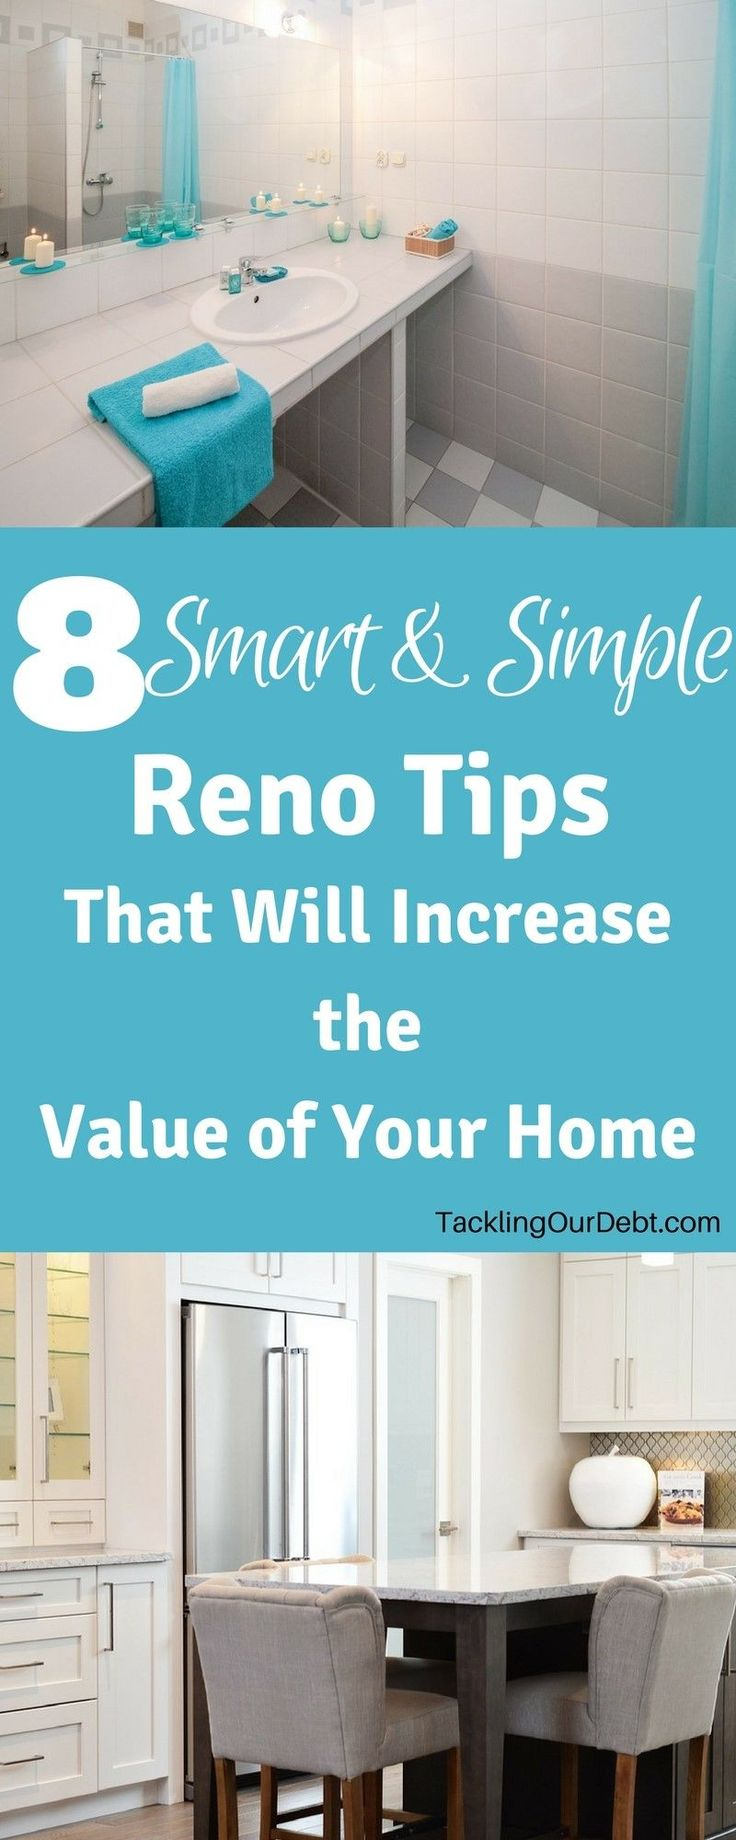 Increase the value of your home: Before you call a Realtor to put your house up for sale, make sure you complete these simple and smart reno tips to dramatically increase the value of your home. Click thru to learn more!